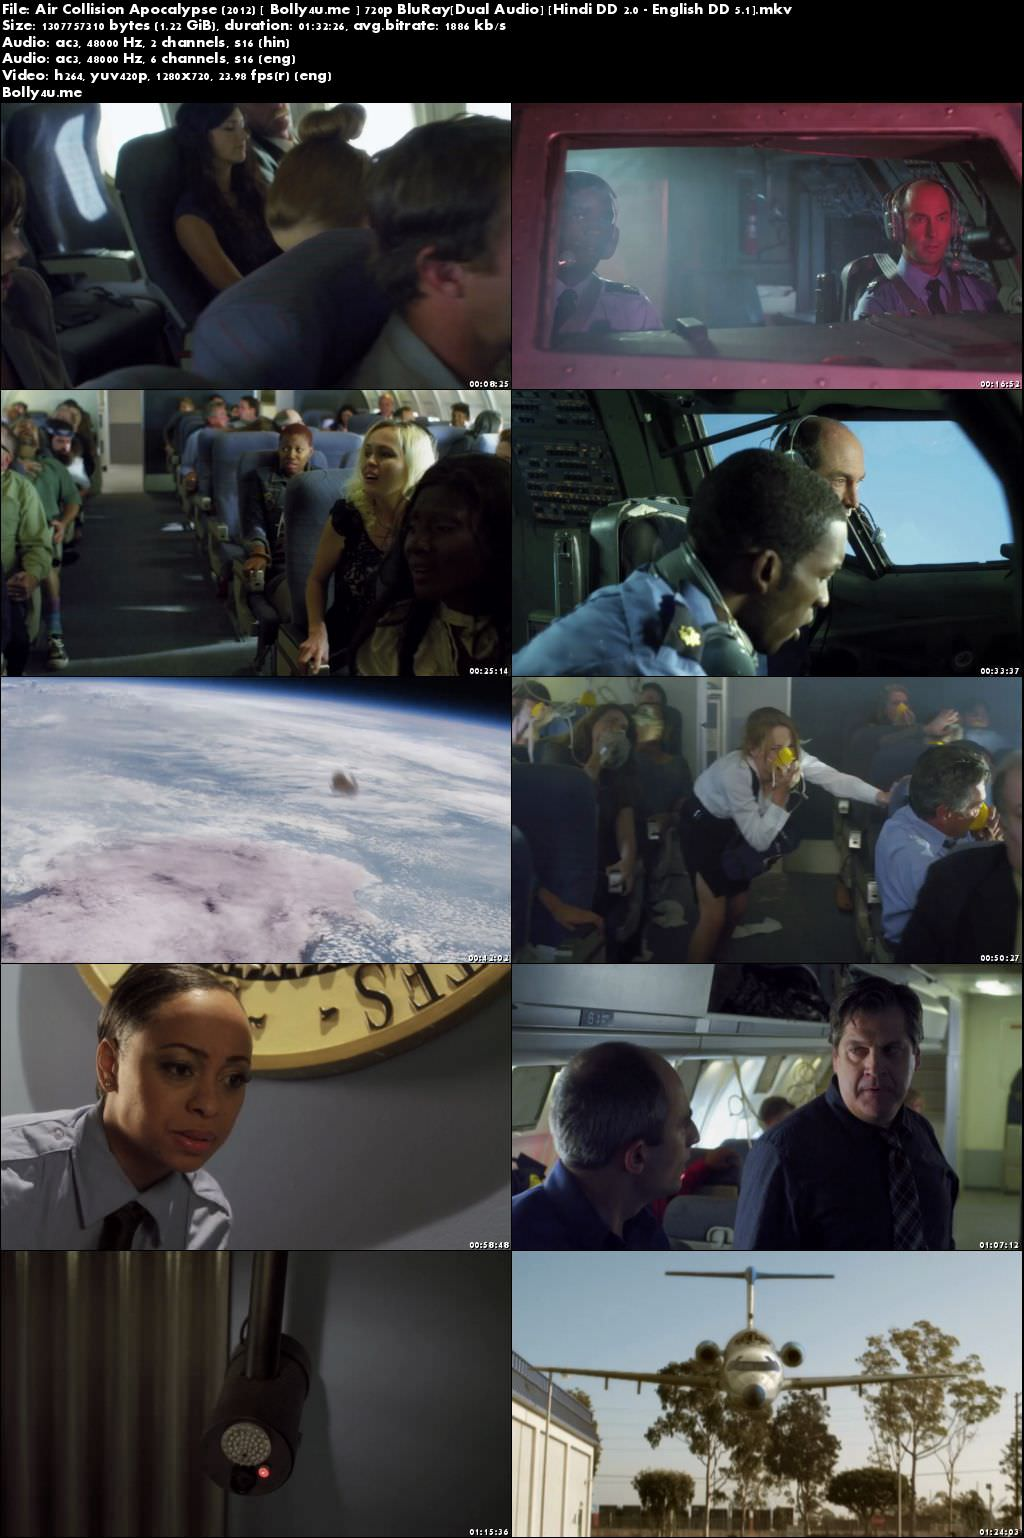 Air Collision Apocalypse 2012 BRRip Hindi Dubbed Dual Audio 720p Download